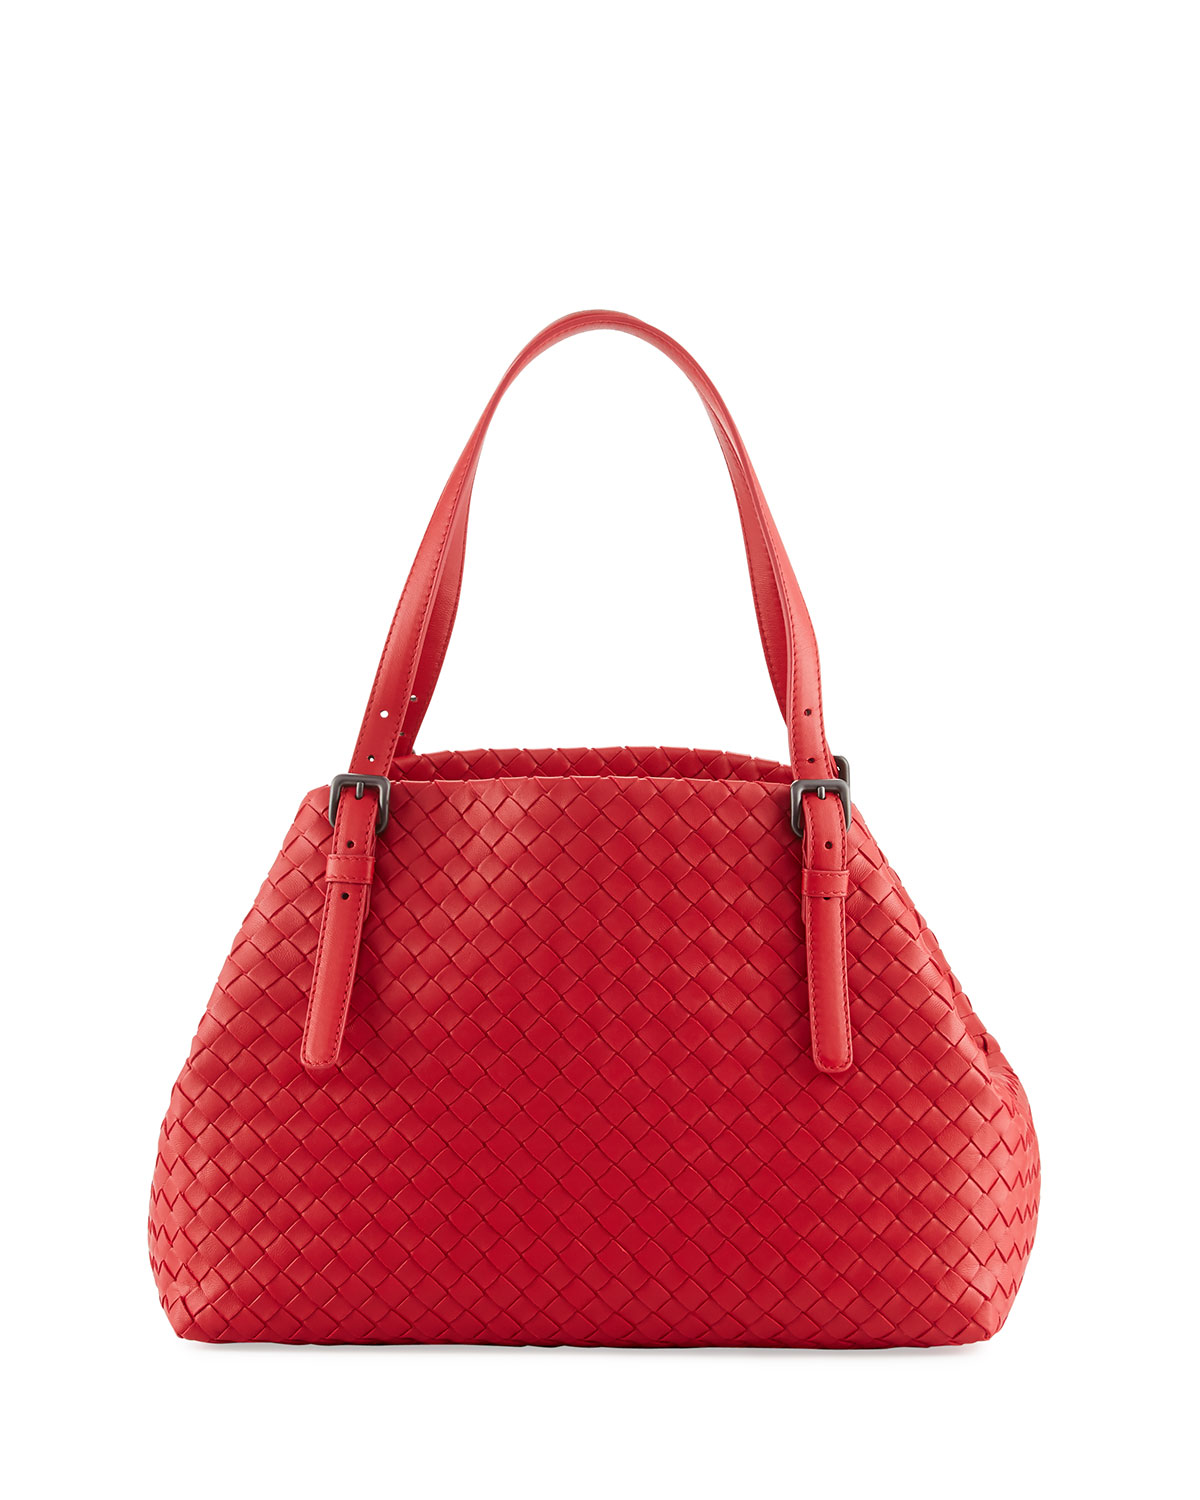 23b4868f1c37 Bottega Veneta Medium Cesta Tote